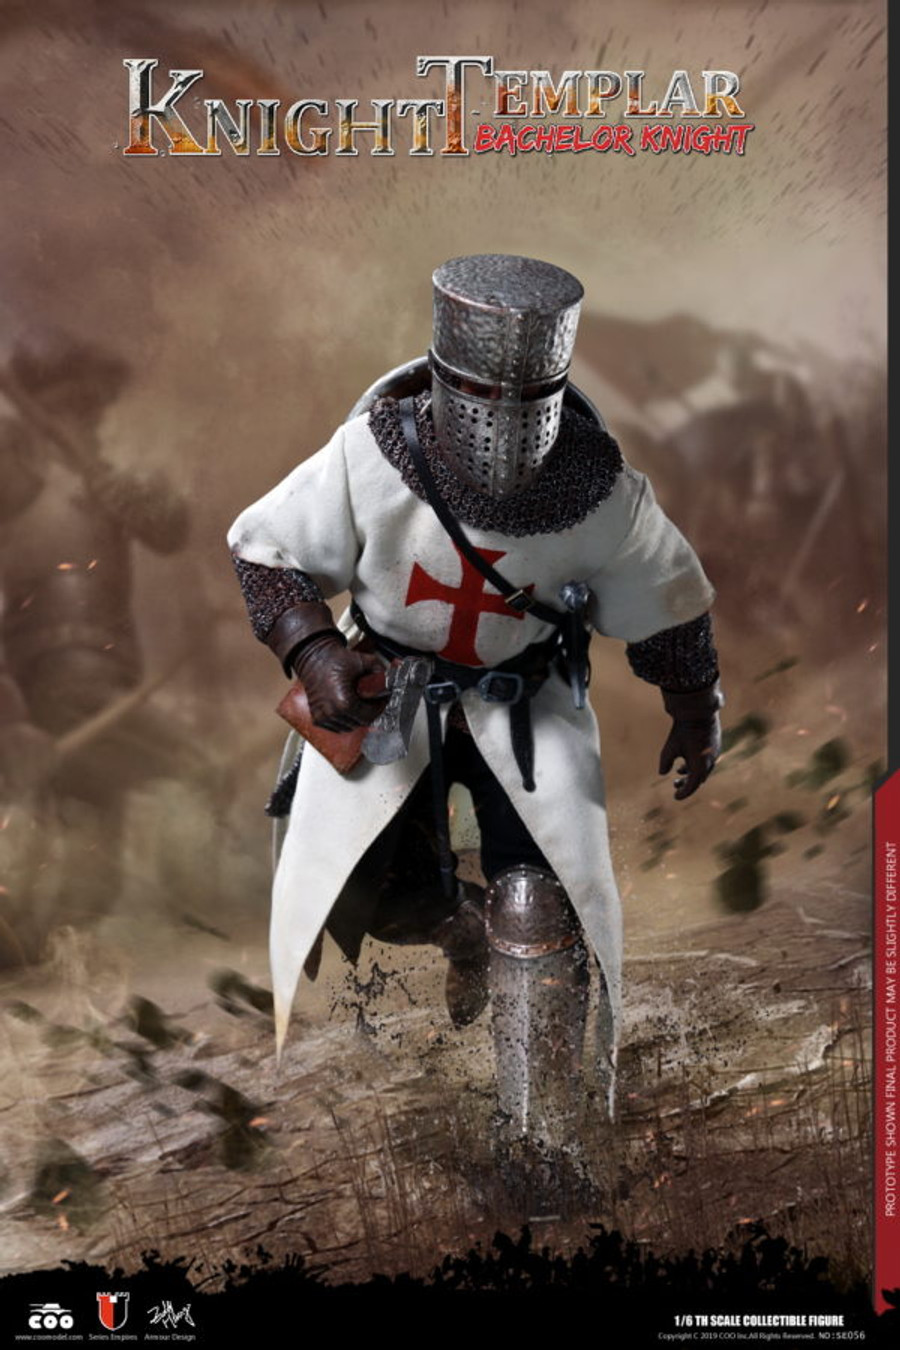 COO Model - Bachelor of Knights Templar